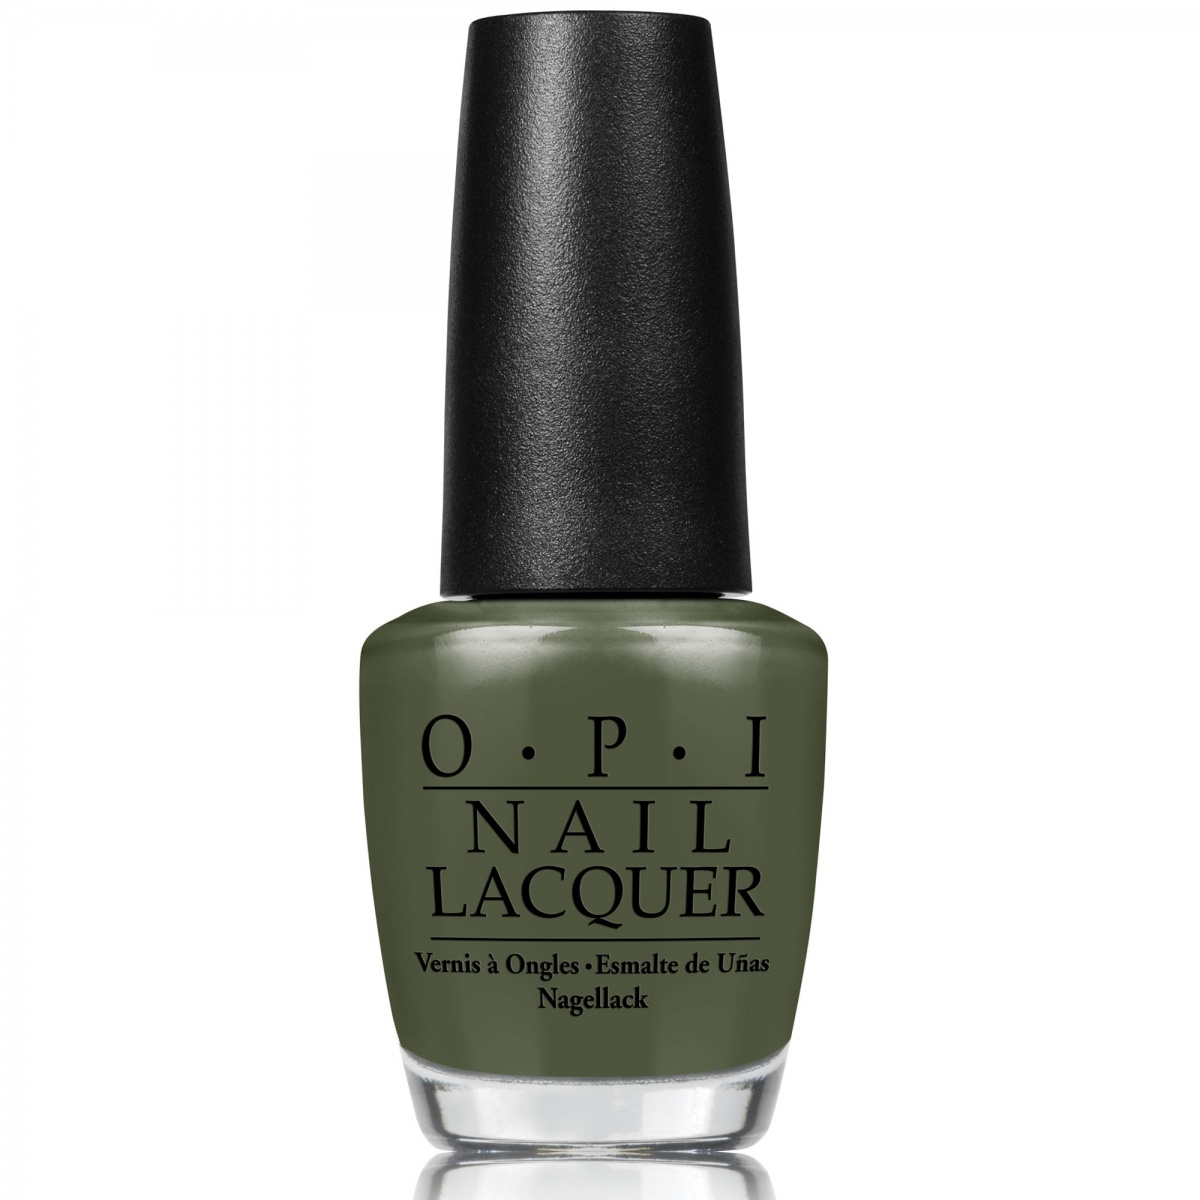 opi-washington-dc-nail-polish-collection-2016-suzi-the-first-lady-of-nails-15ml-p18111-78818_zoom